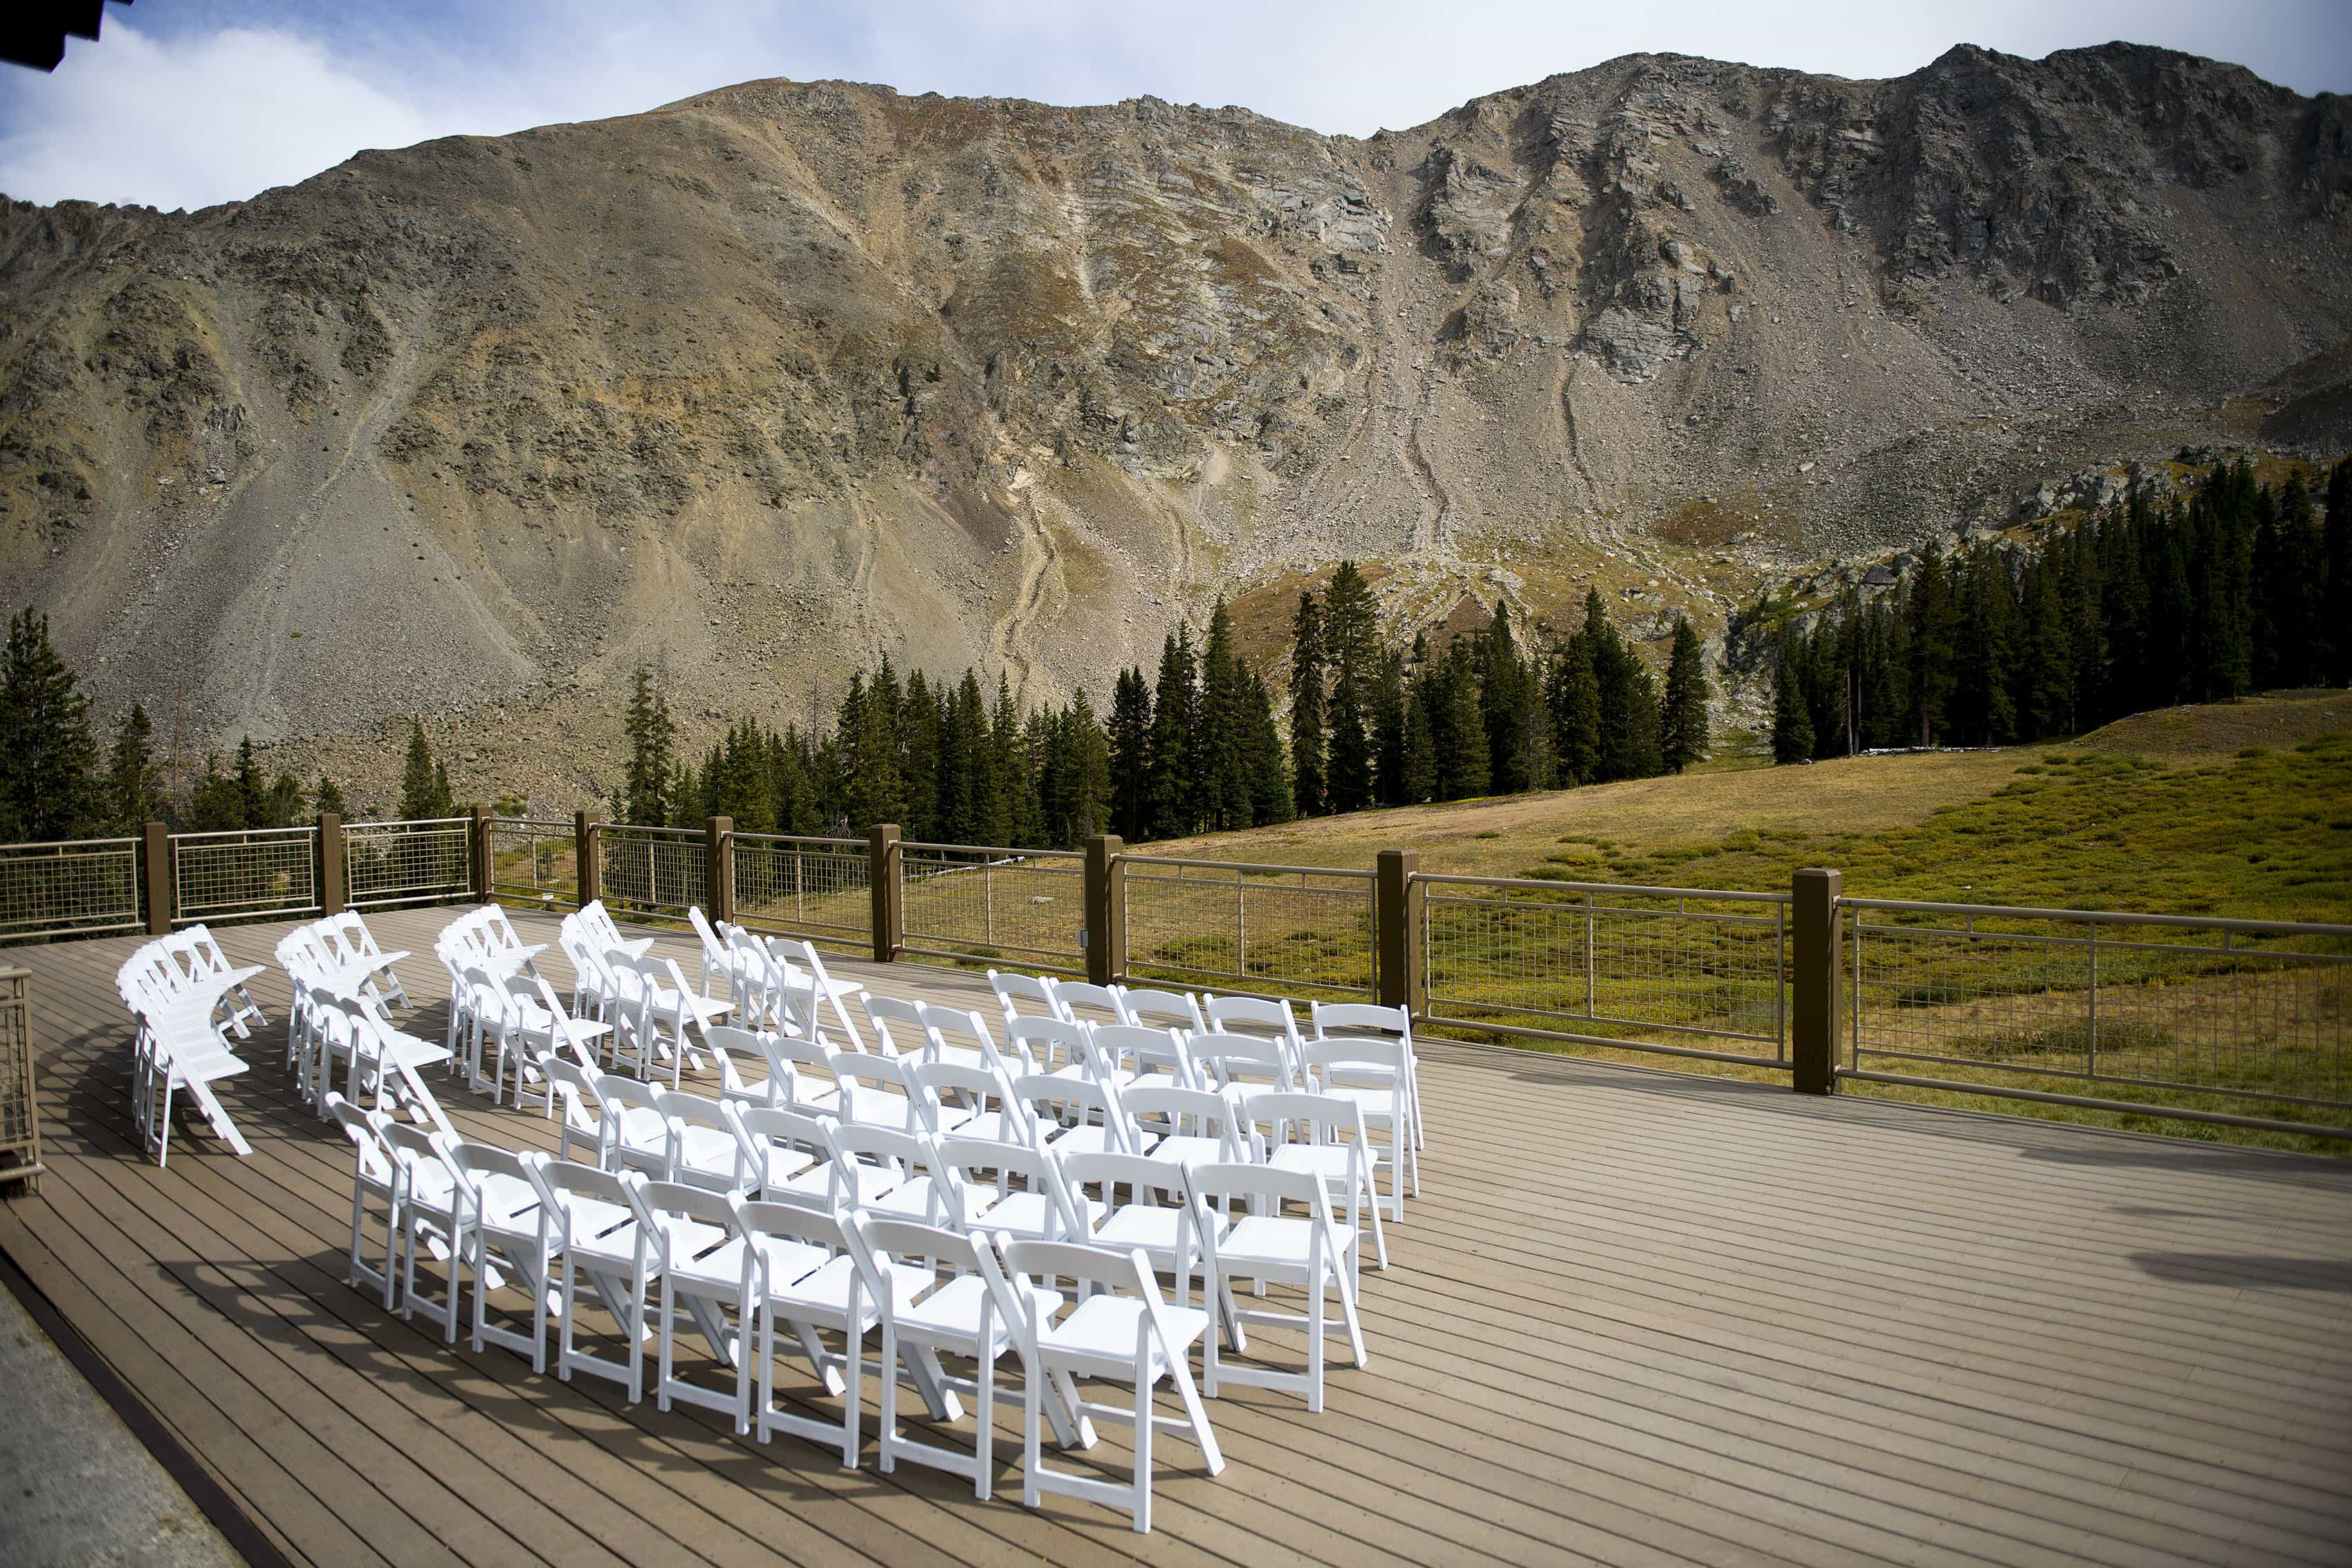 Wedding deck ceremony setup at Arapahoe Basin's Black Mountain Lodge